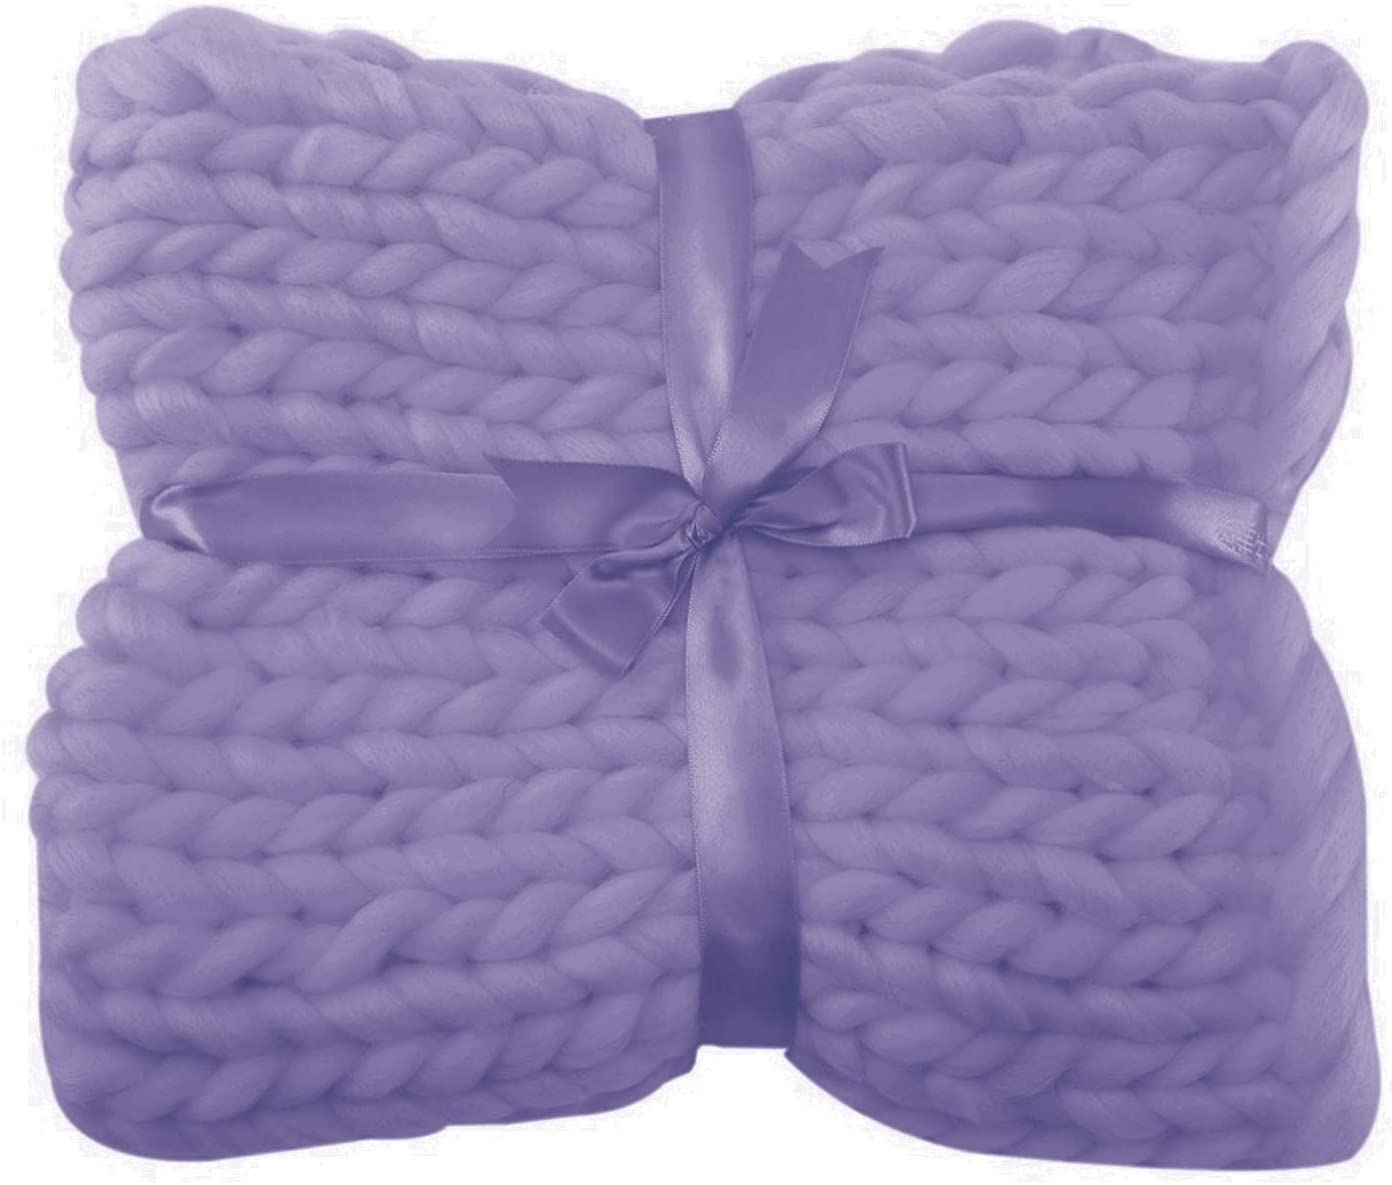 Department store YXYH Chunky Knit Blanket Super Polyester Yarn Soft Knitted Hand service